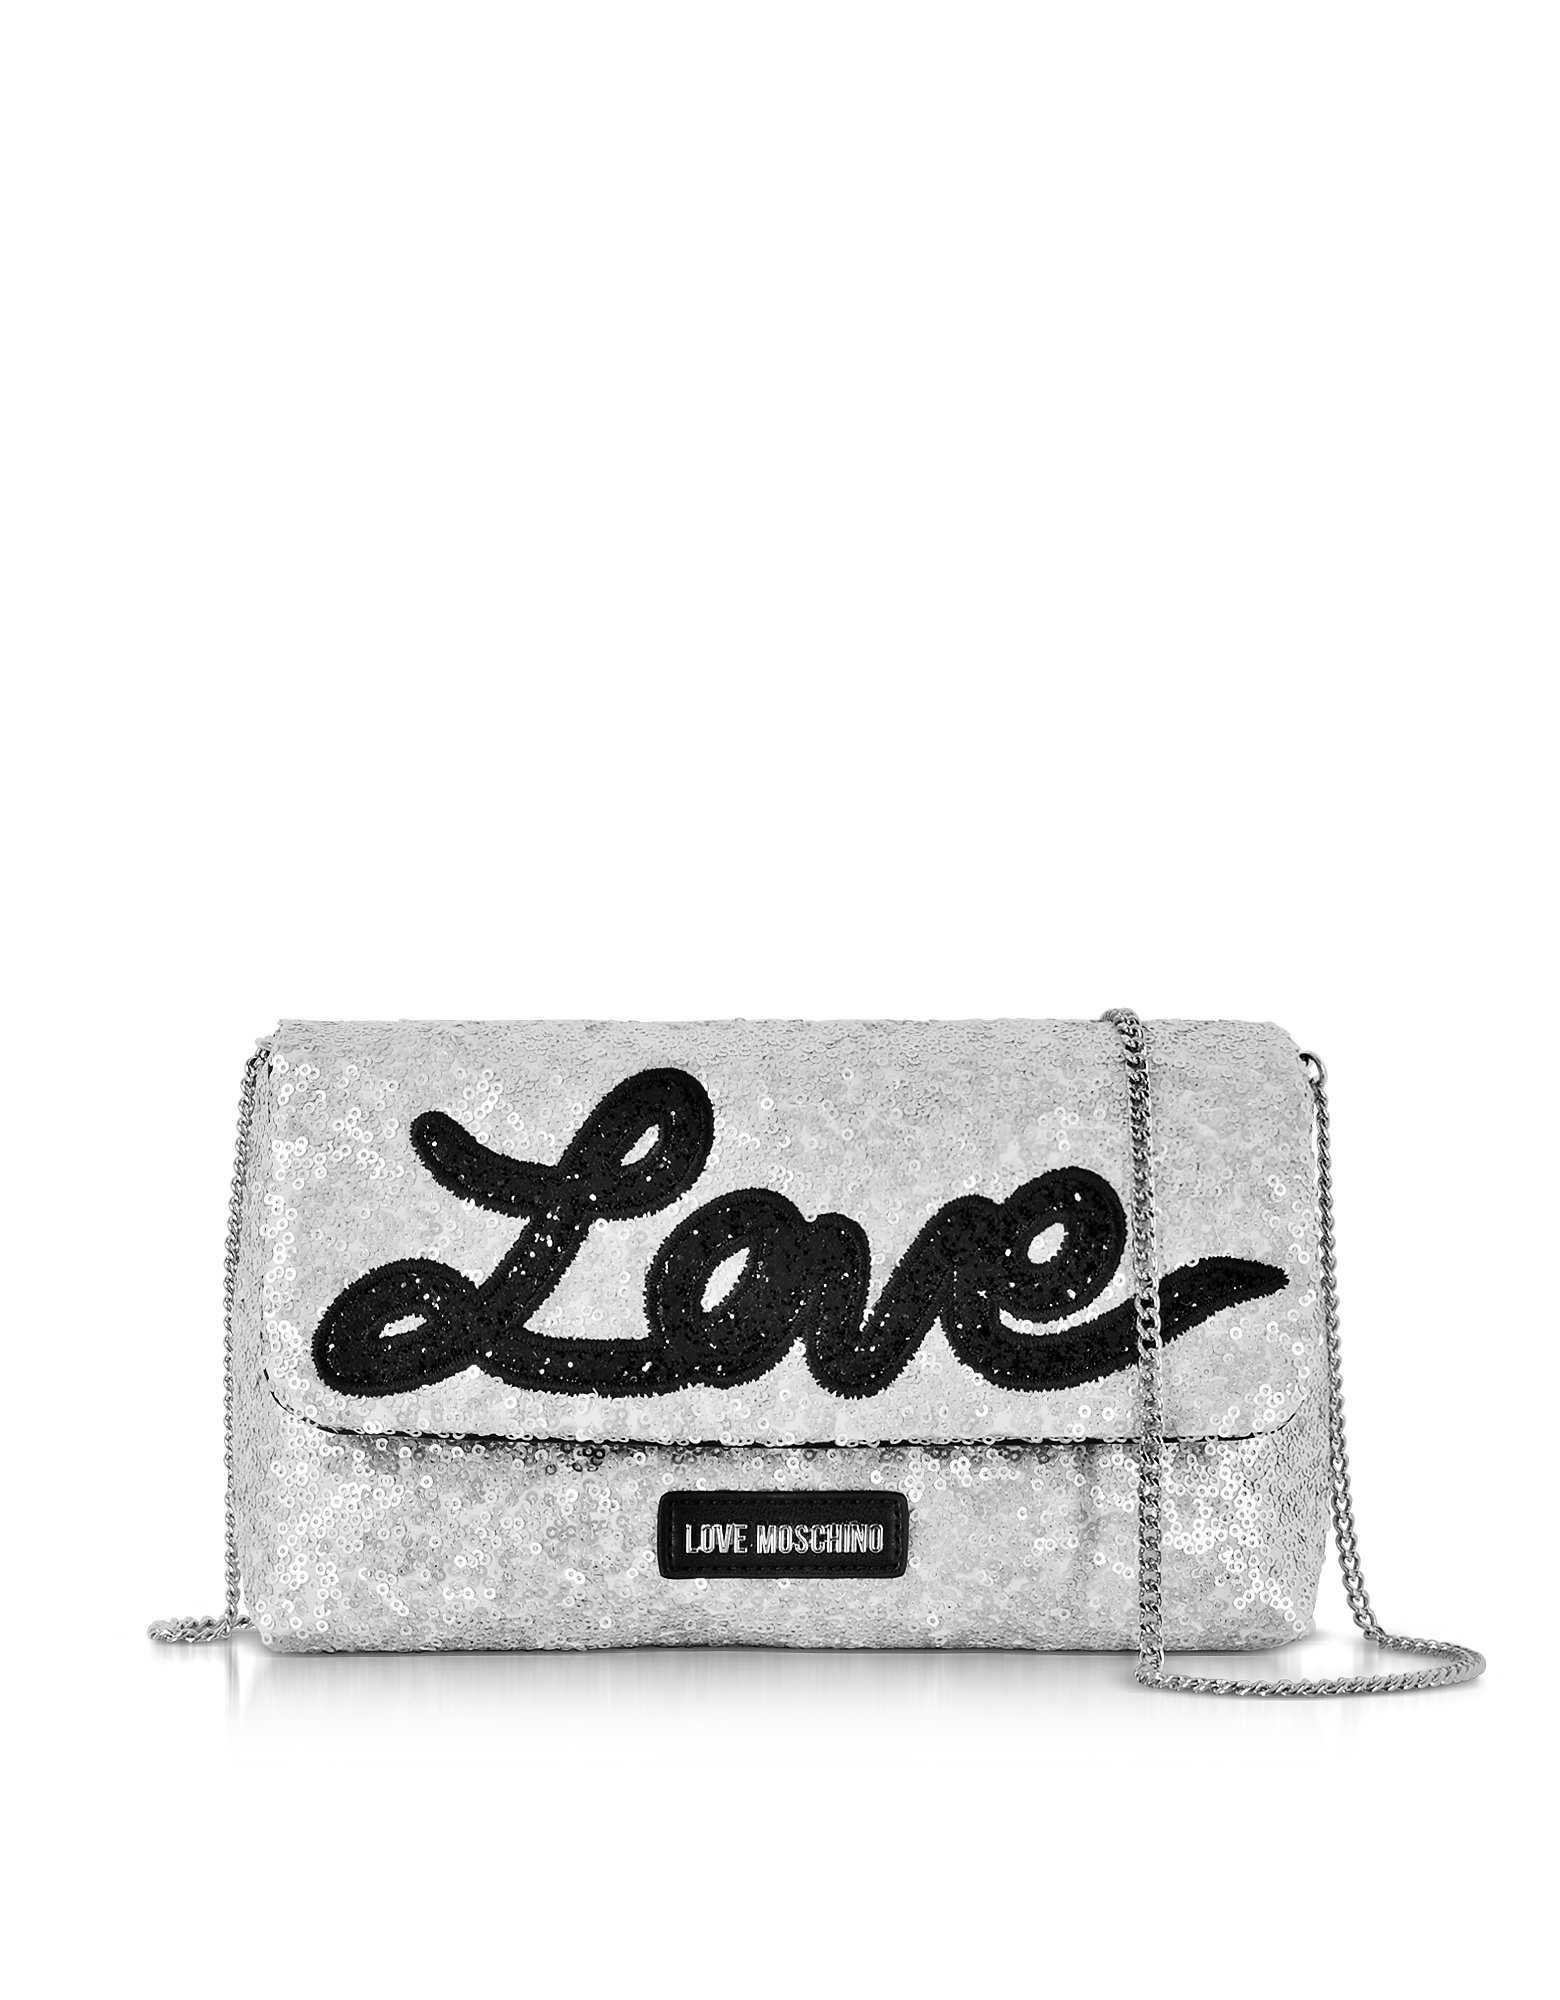 Love Moschino Women's Jc4105pp15lr0902 Silver Leather Shoulder Bag